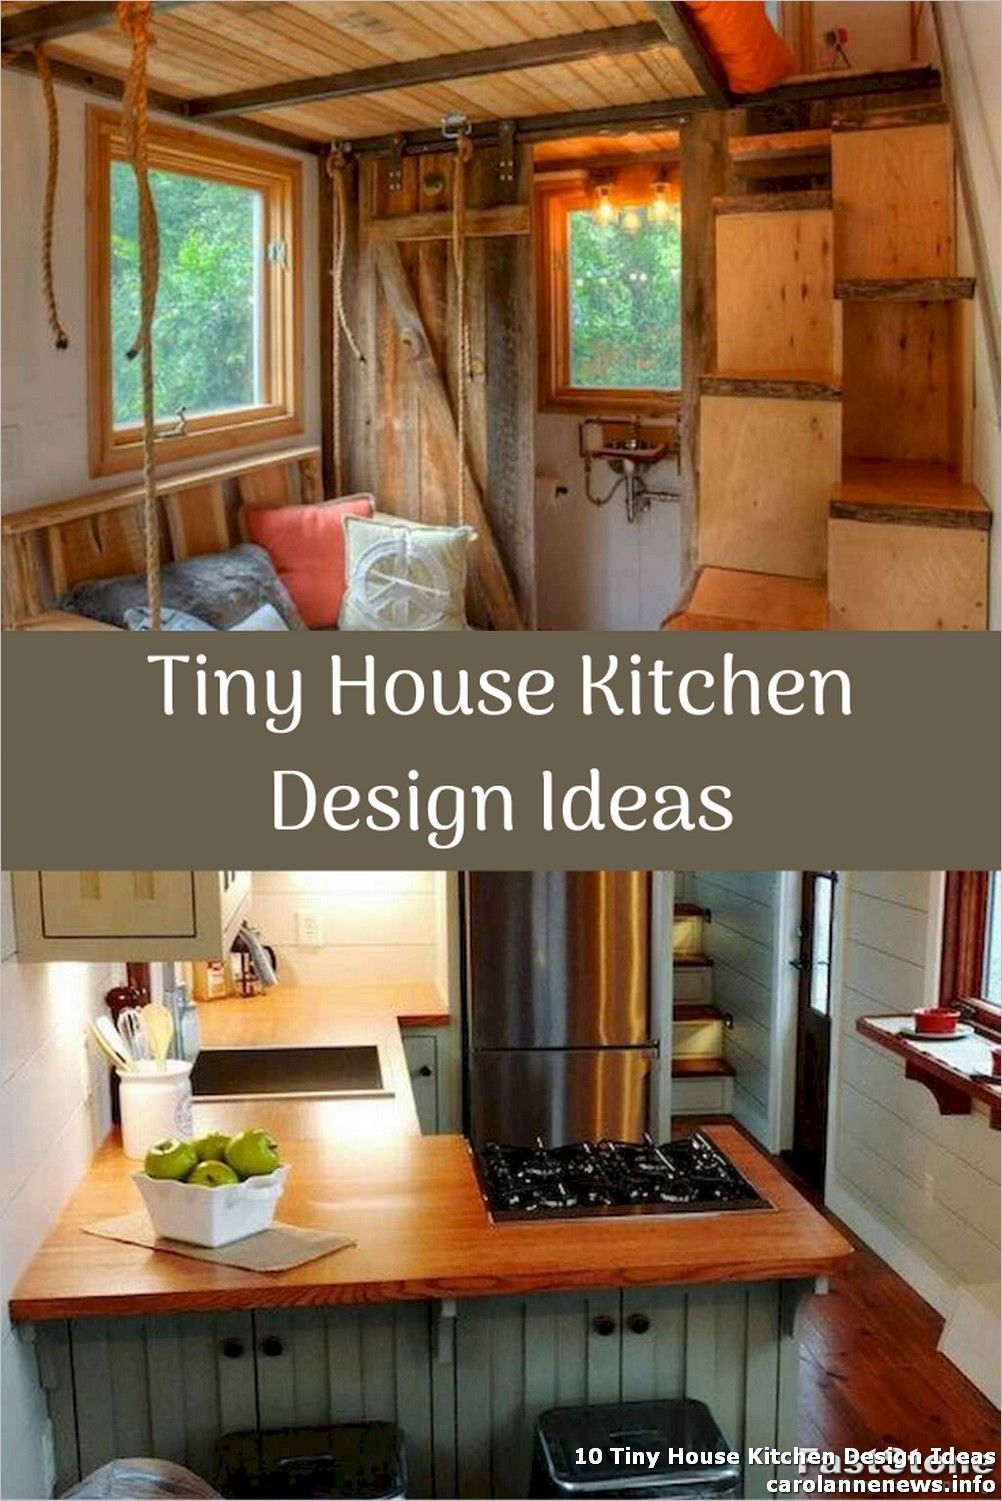 10 Tiny House Kitchen Design Ideas So Going By This Course Of Would Require A Willingness To Reassess In 2020 Tiny House Kitchen House Design Kitchen Kitchen Design